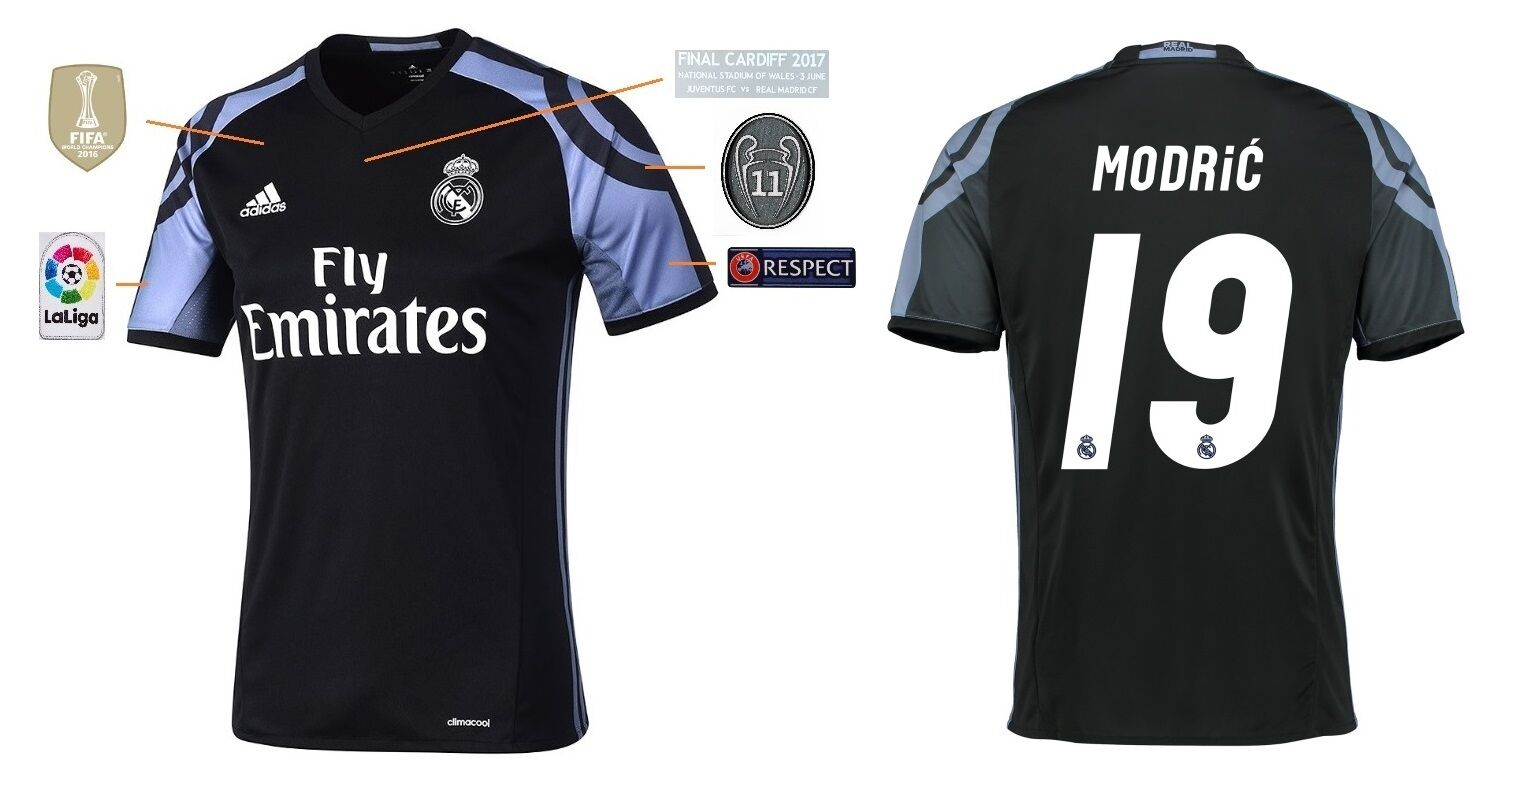 Trikot Real Madrid Third Champions League Final Cardiff 2017 - Modric